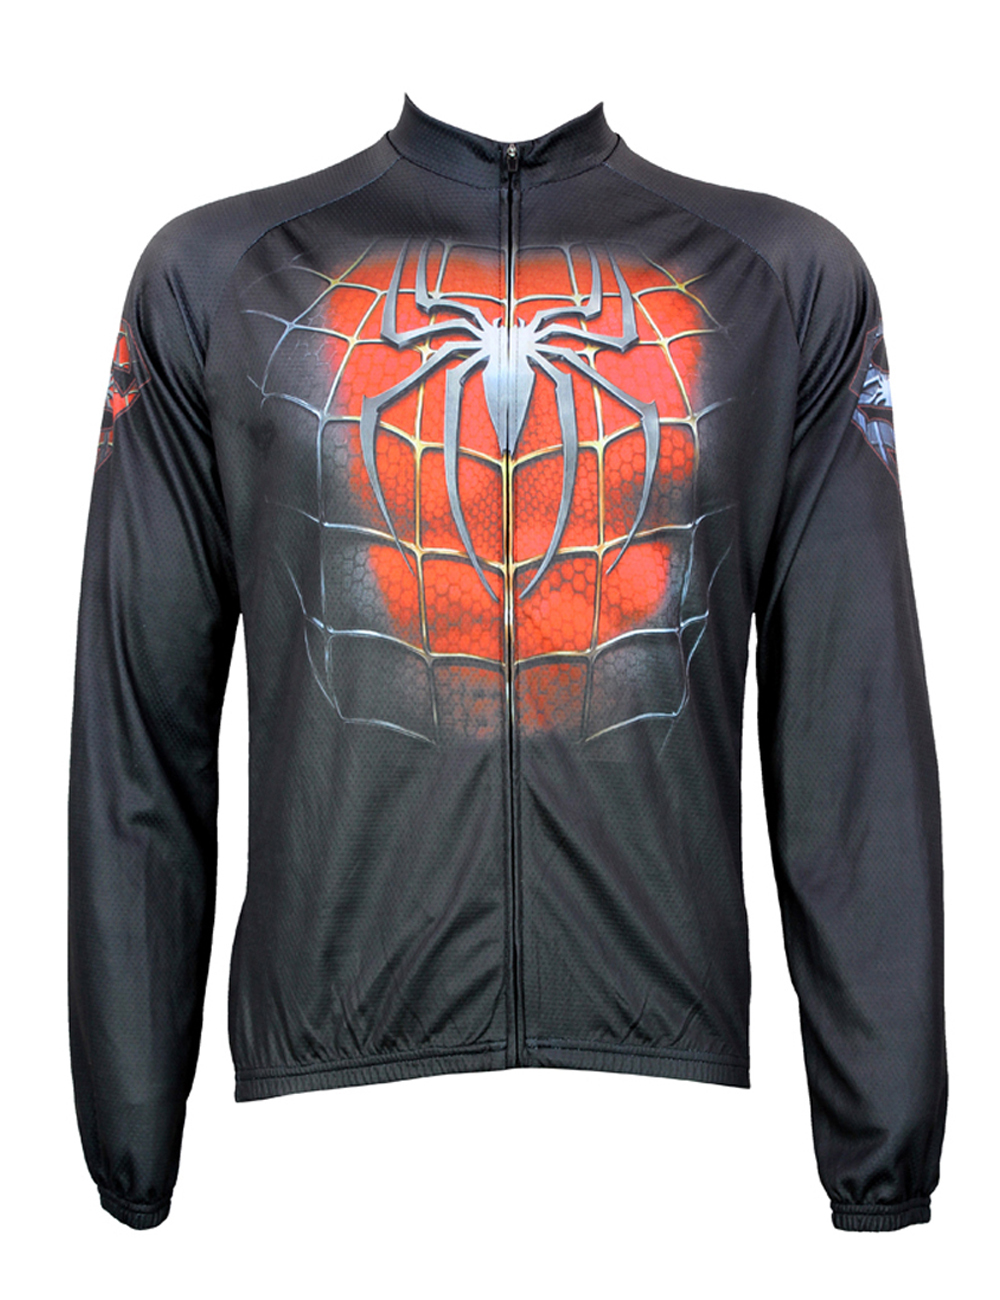 New Fashion Black/red Spider Alien Sportswear Mens Long Sleeve Cycling Jersey Cycling Clothing Bike Shirt Size 2xs To 6xl